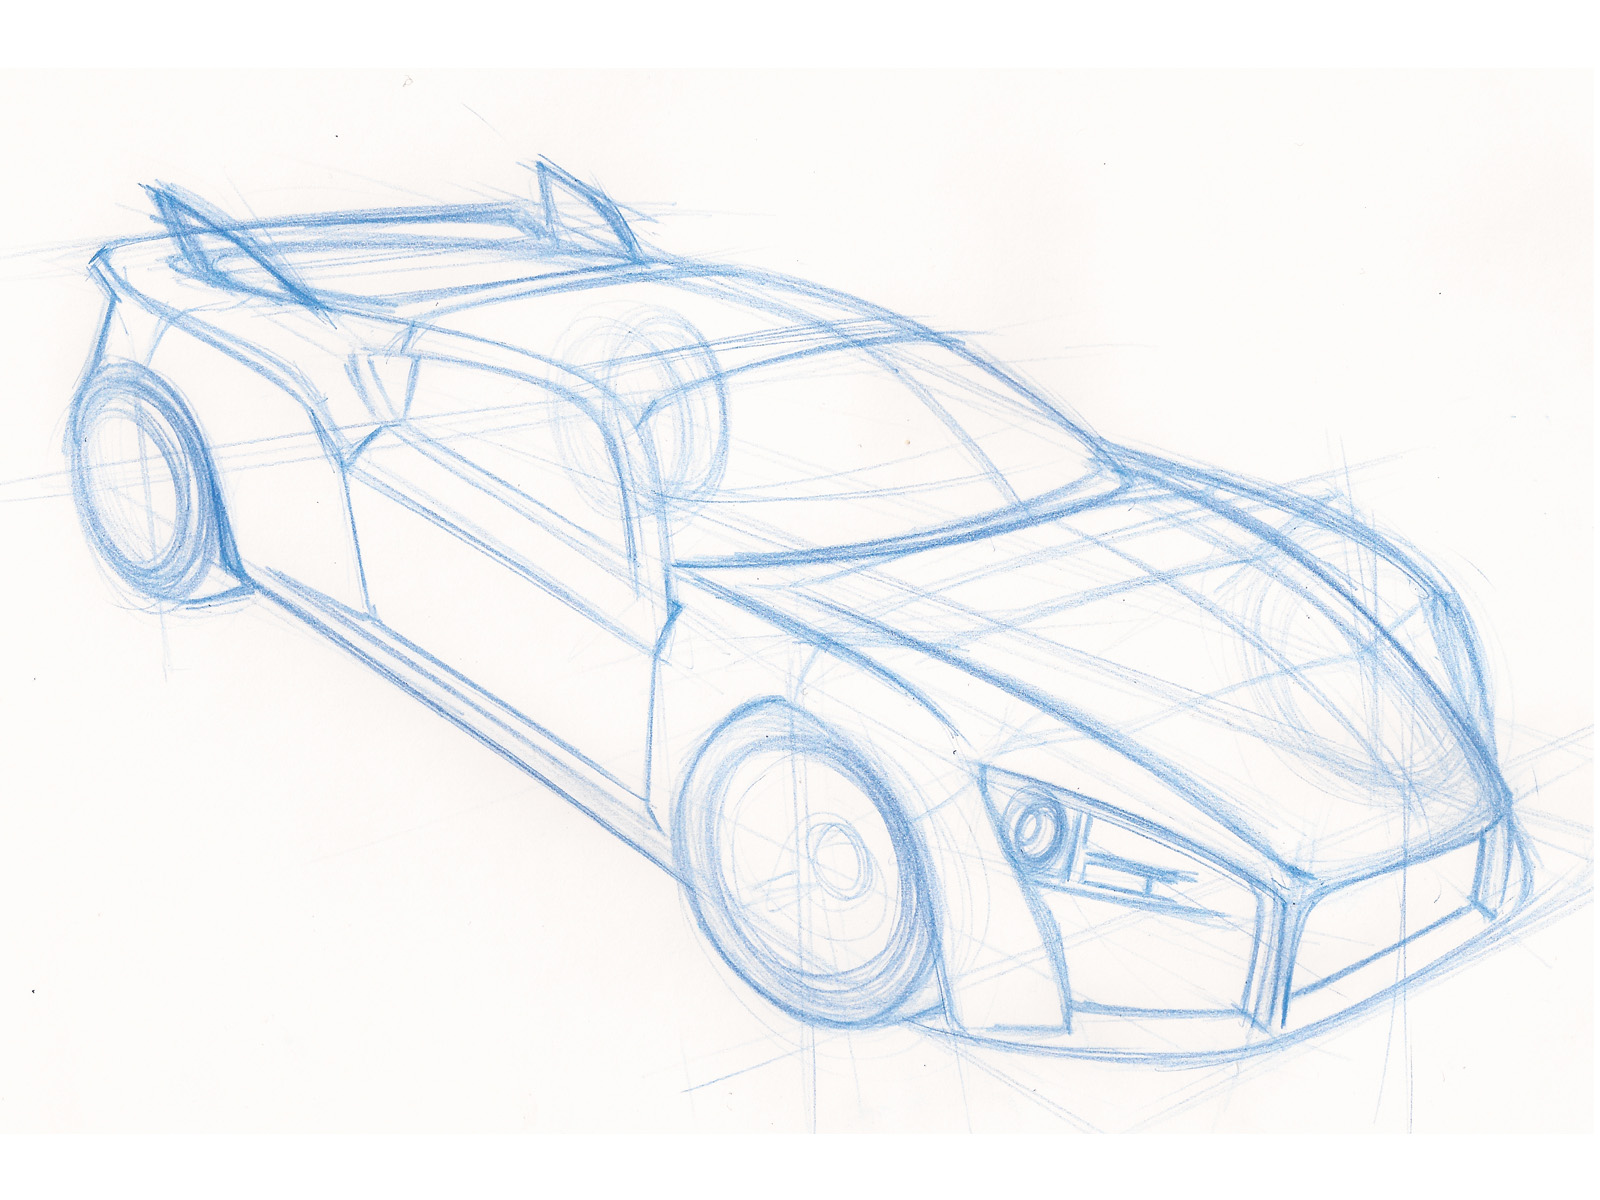 1600x1200 April 1st, Car Drawing Pencil And Coreldraw Robert De Groot